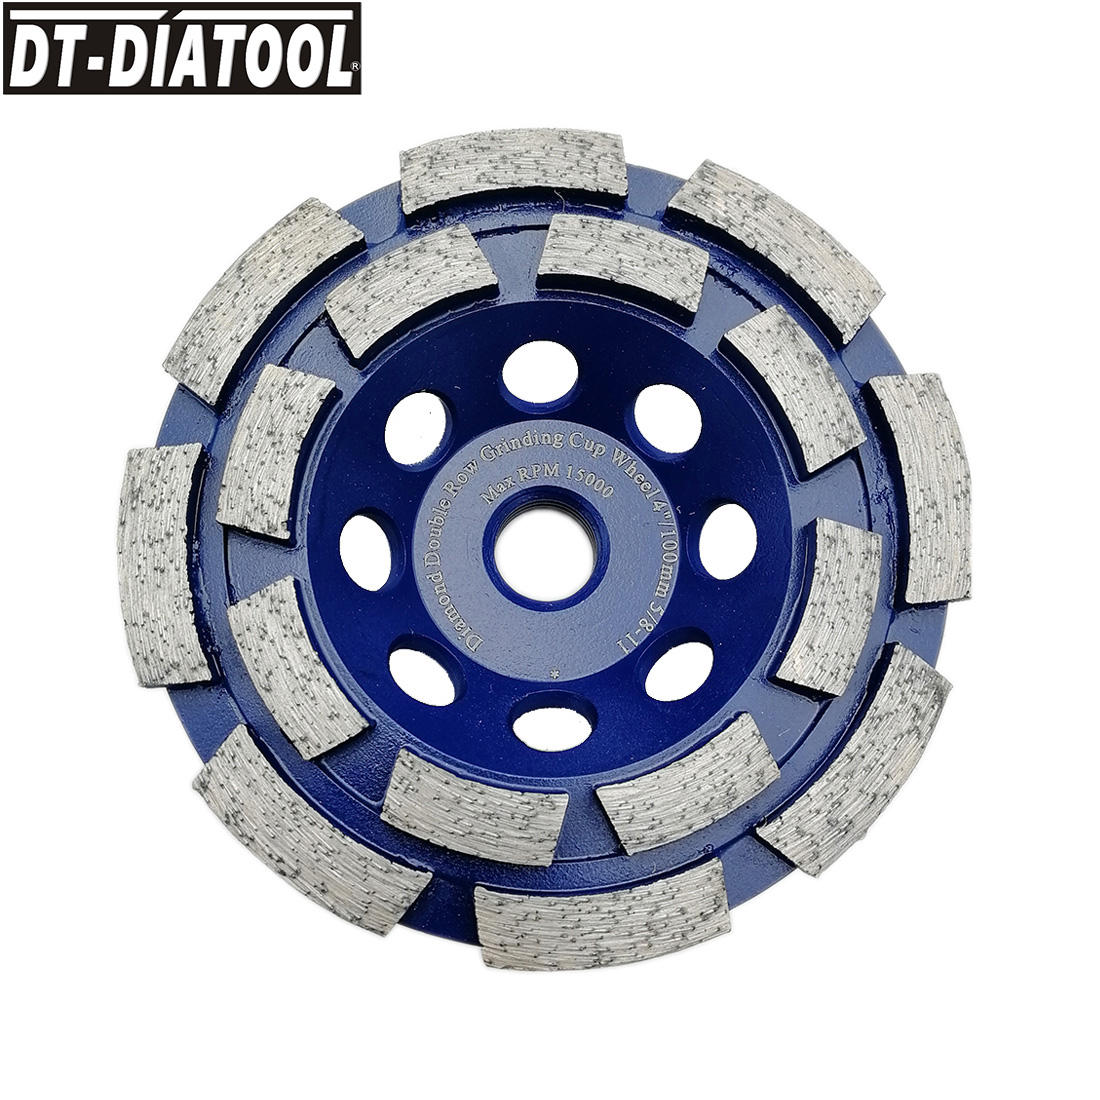 DT-DIATOOL 1pc 5/8-11 thread Dia 4inch/100mm Diamond Double Row Cup Grinding Wheel For Concrete Brick Hard Stone Granite Marble